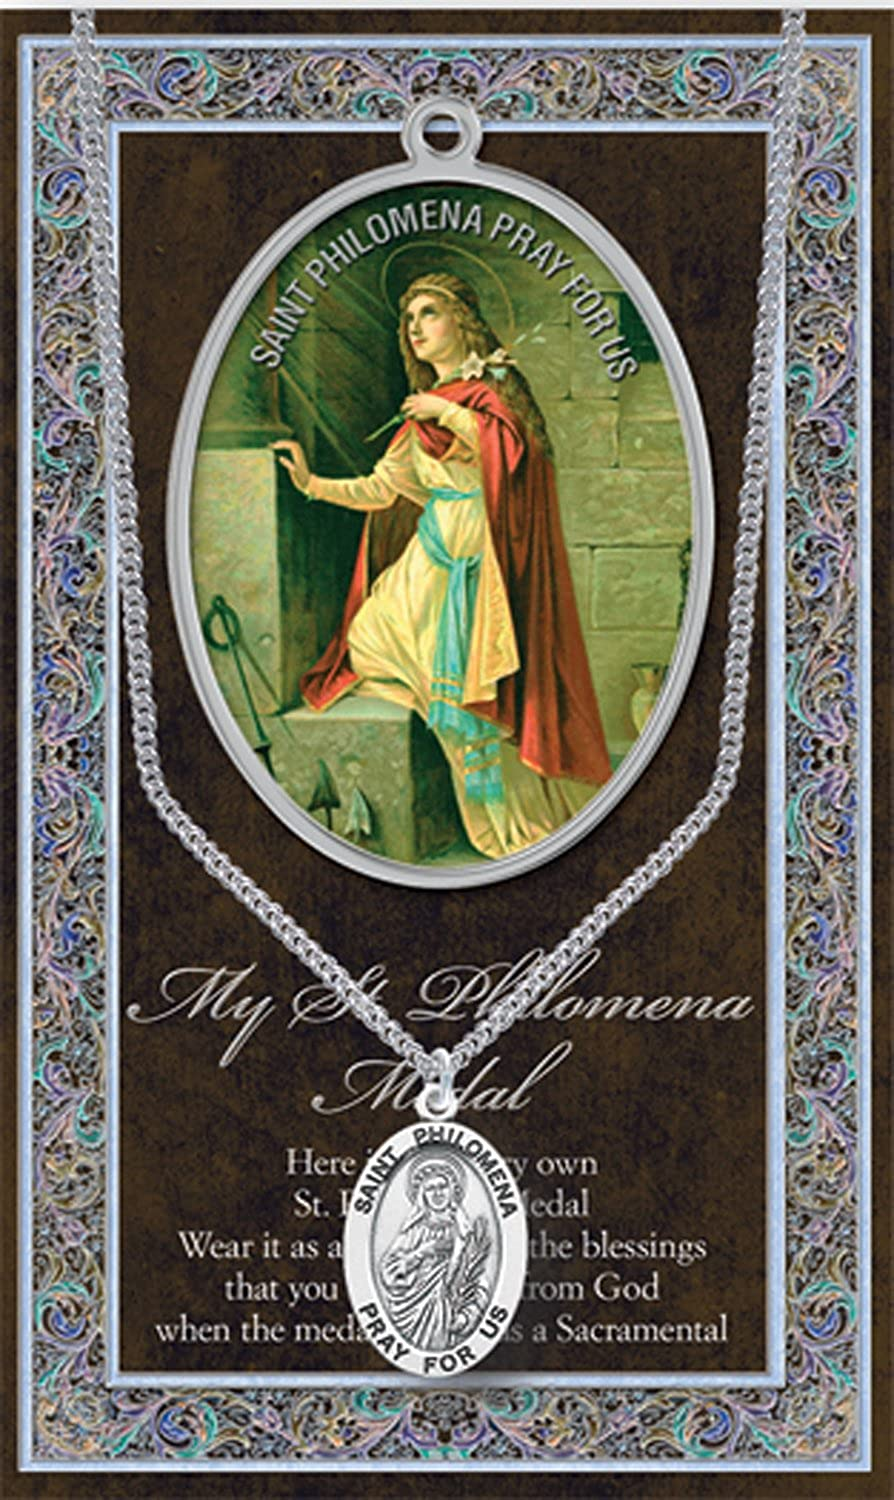 "++SAINT PHILOMENA 1.125"" Genuine Pewter Medal Stainless Steel Chain. Silver Embossed Pamphletw Copyrighted Paul Herbert Blessing PATRONA Series"